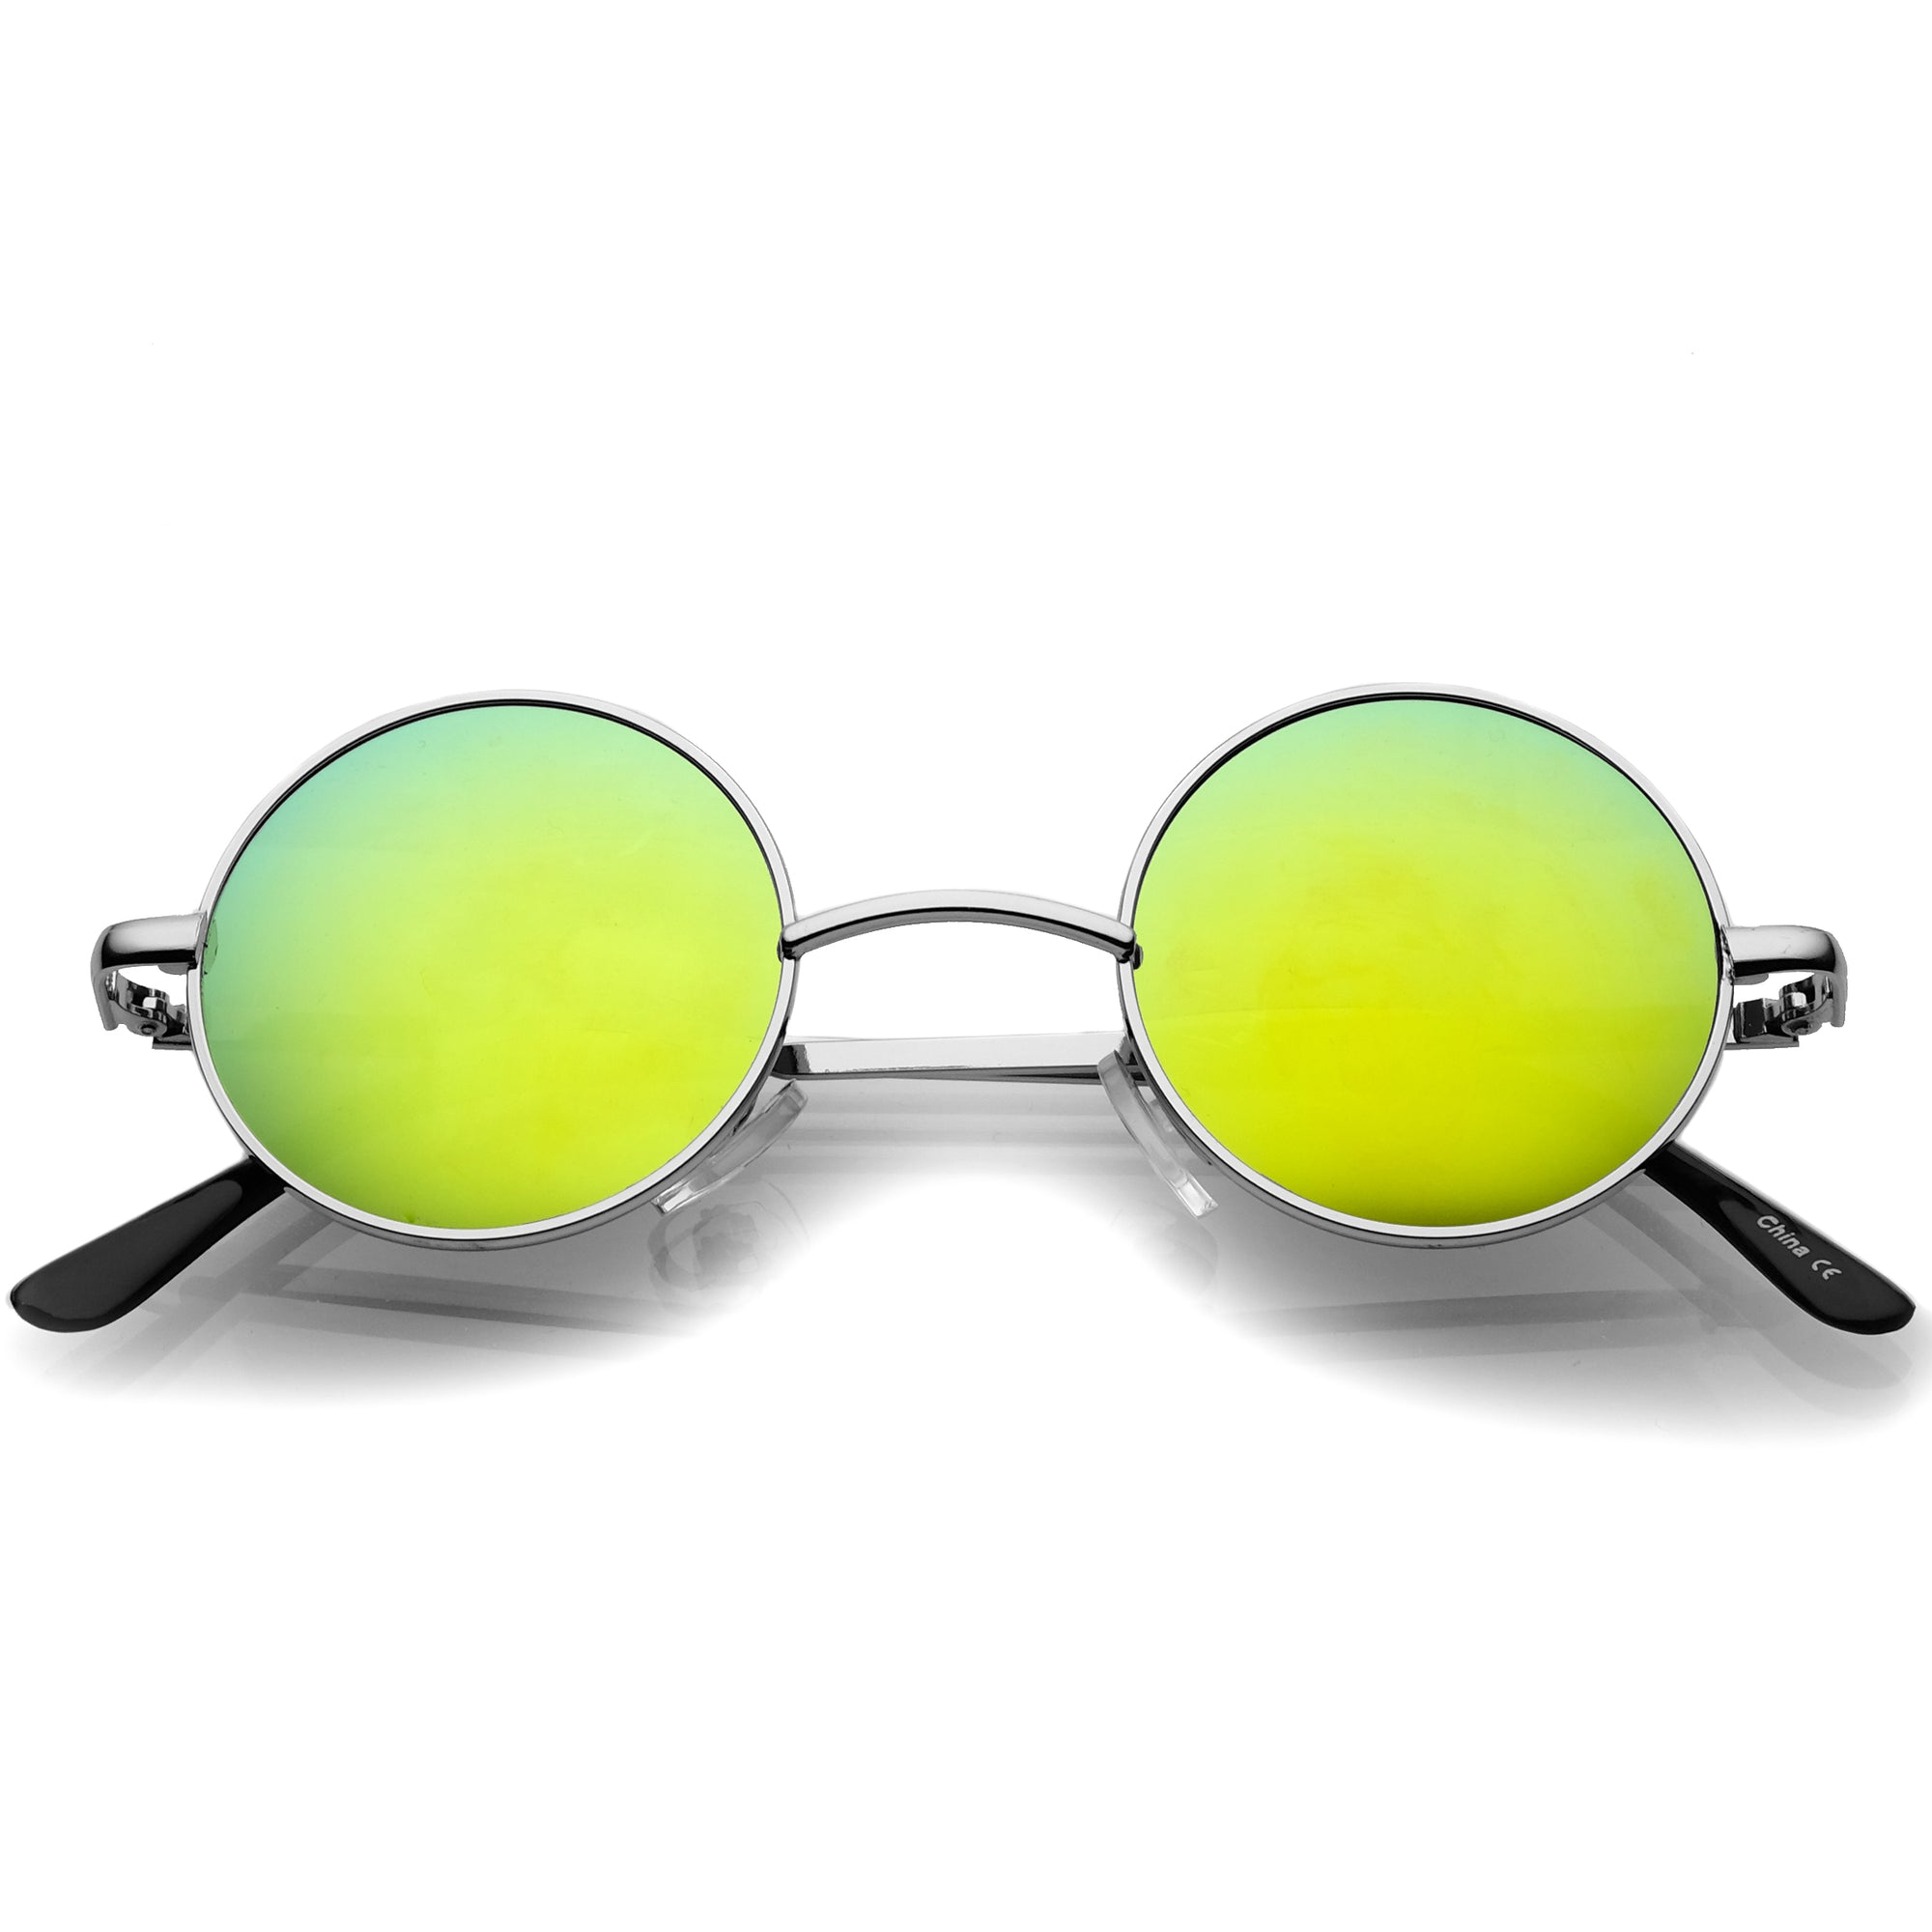 Retro Lennon Style Round Circle Metal Mirror Lens Sunglasses 1408